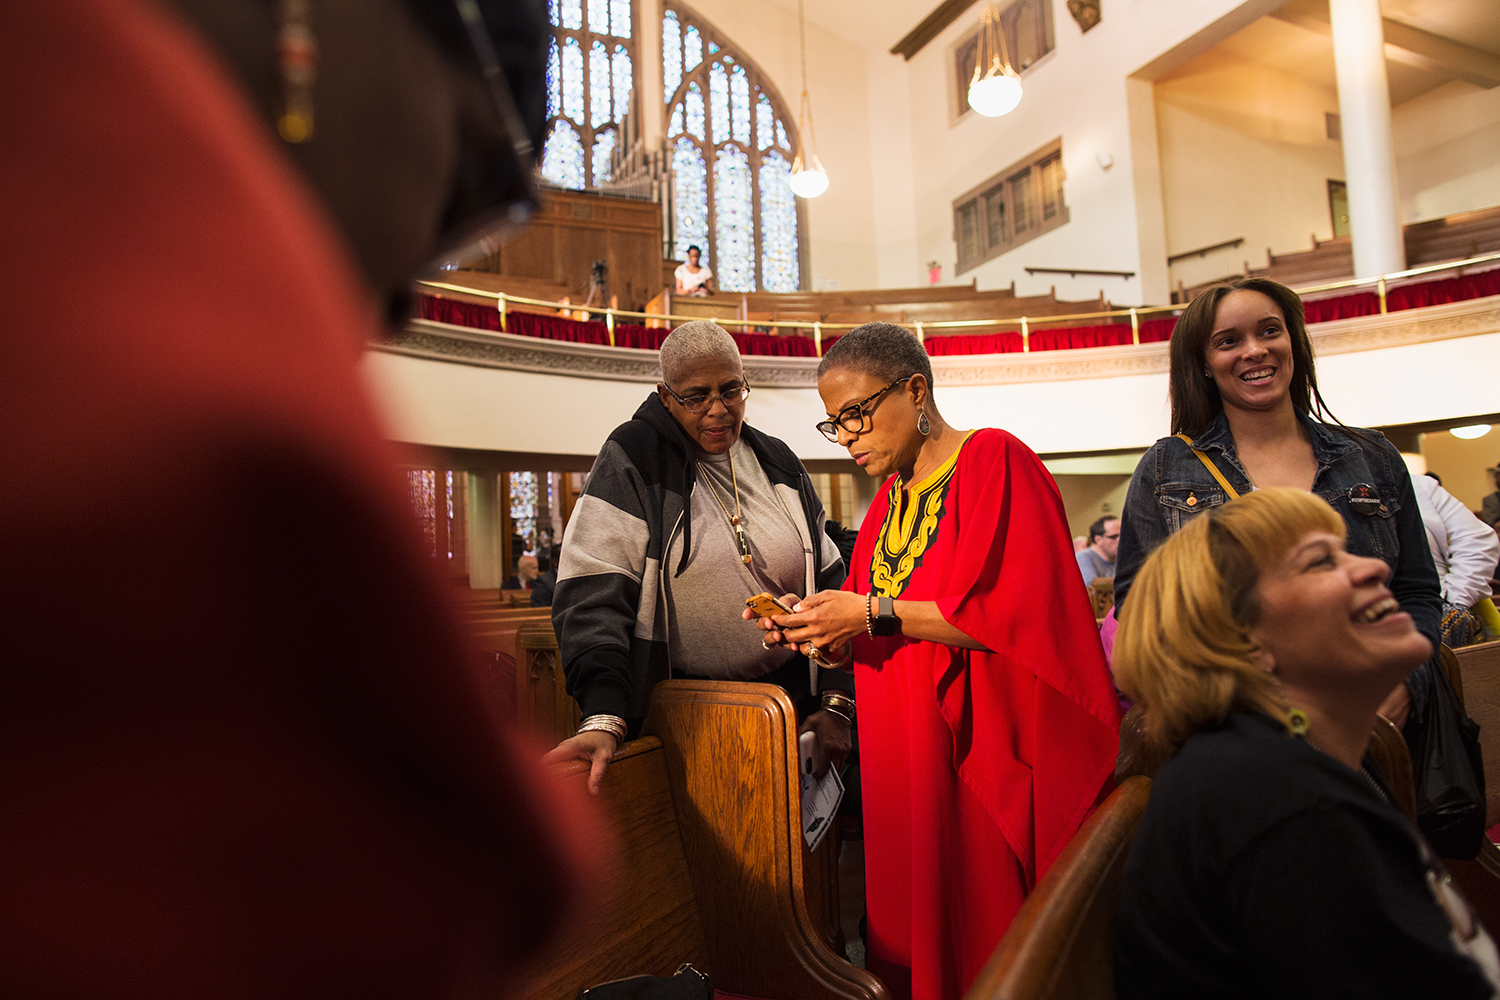 Interfaith service at Harlem's historic  Abyssinian Baptist Church  organized by advocacy group  VOCAL-NY  to call for end to the war on drugs on the eve of the United Nations General Assembly Special Session on the world drug problem ( UNGASS ), NY, NY, 2016